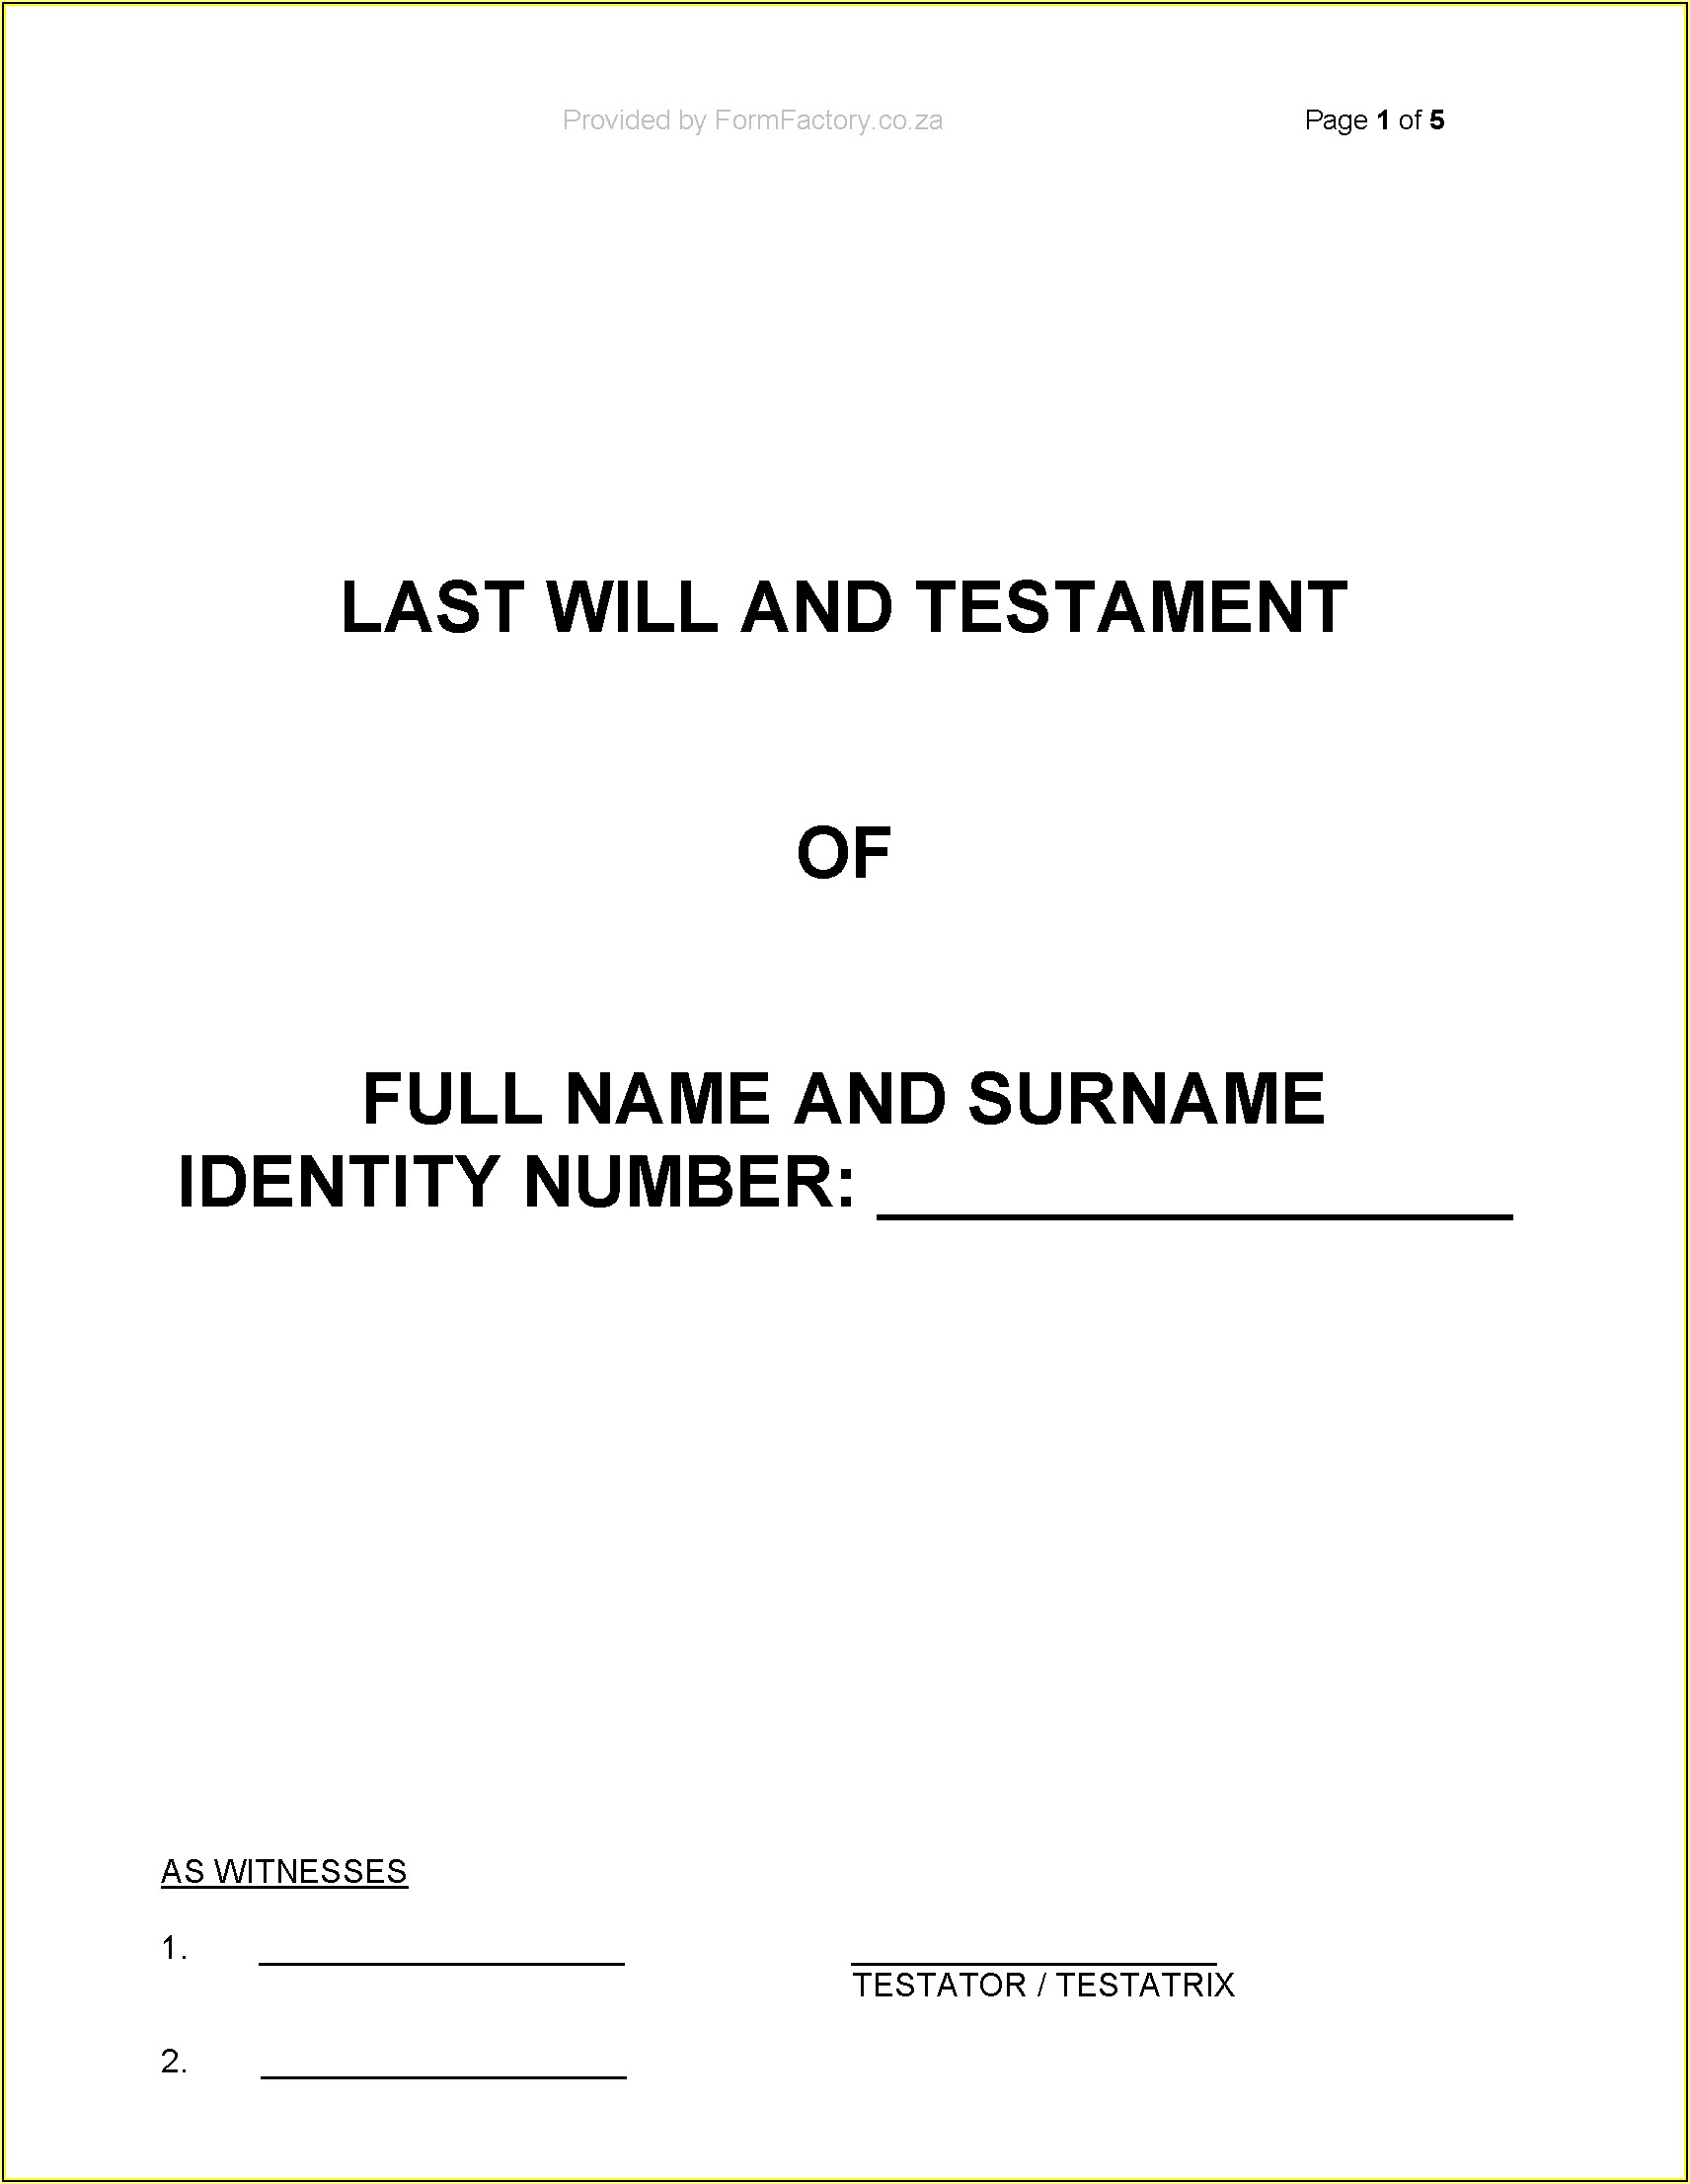 Last Will And Testament Template Free South Africa